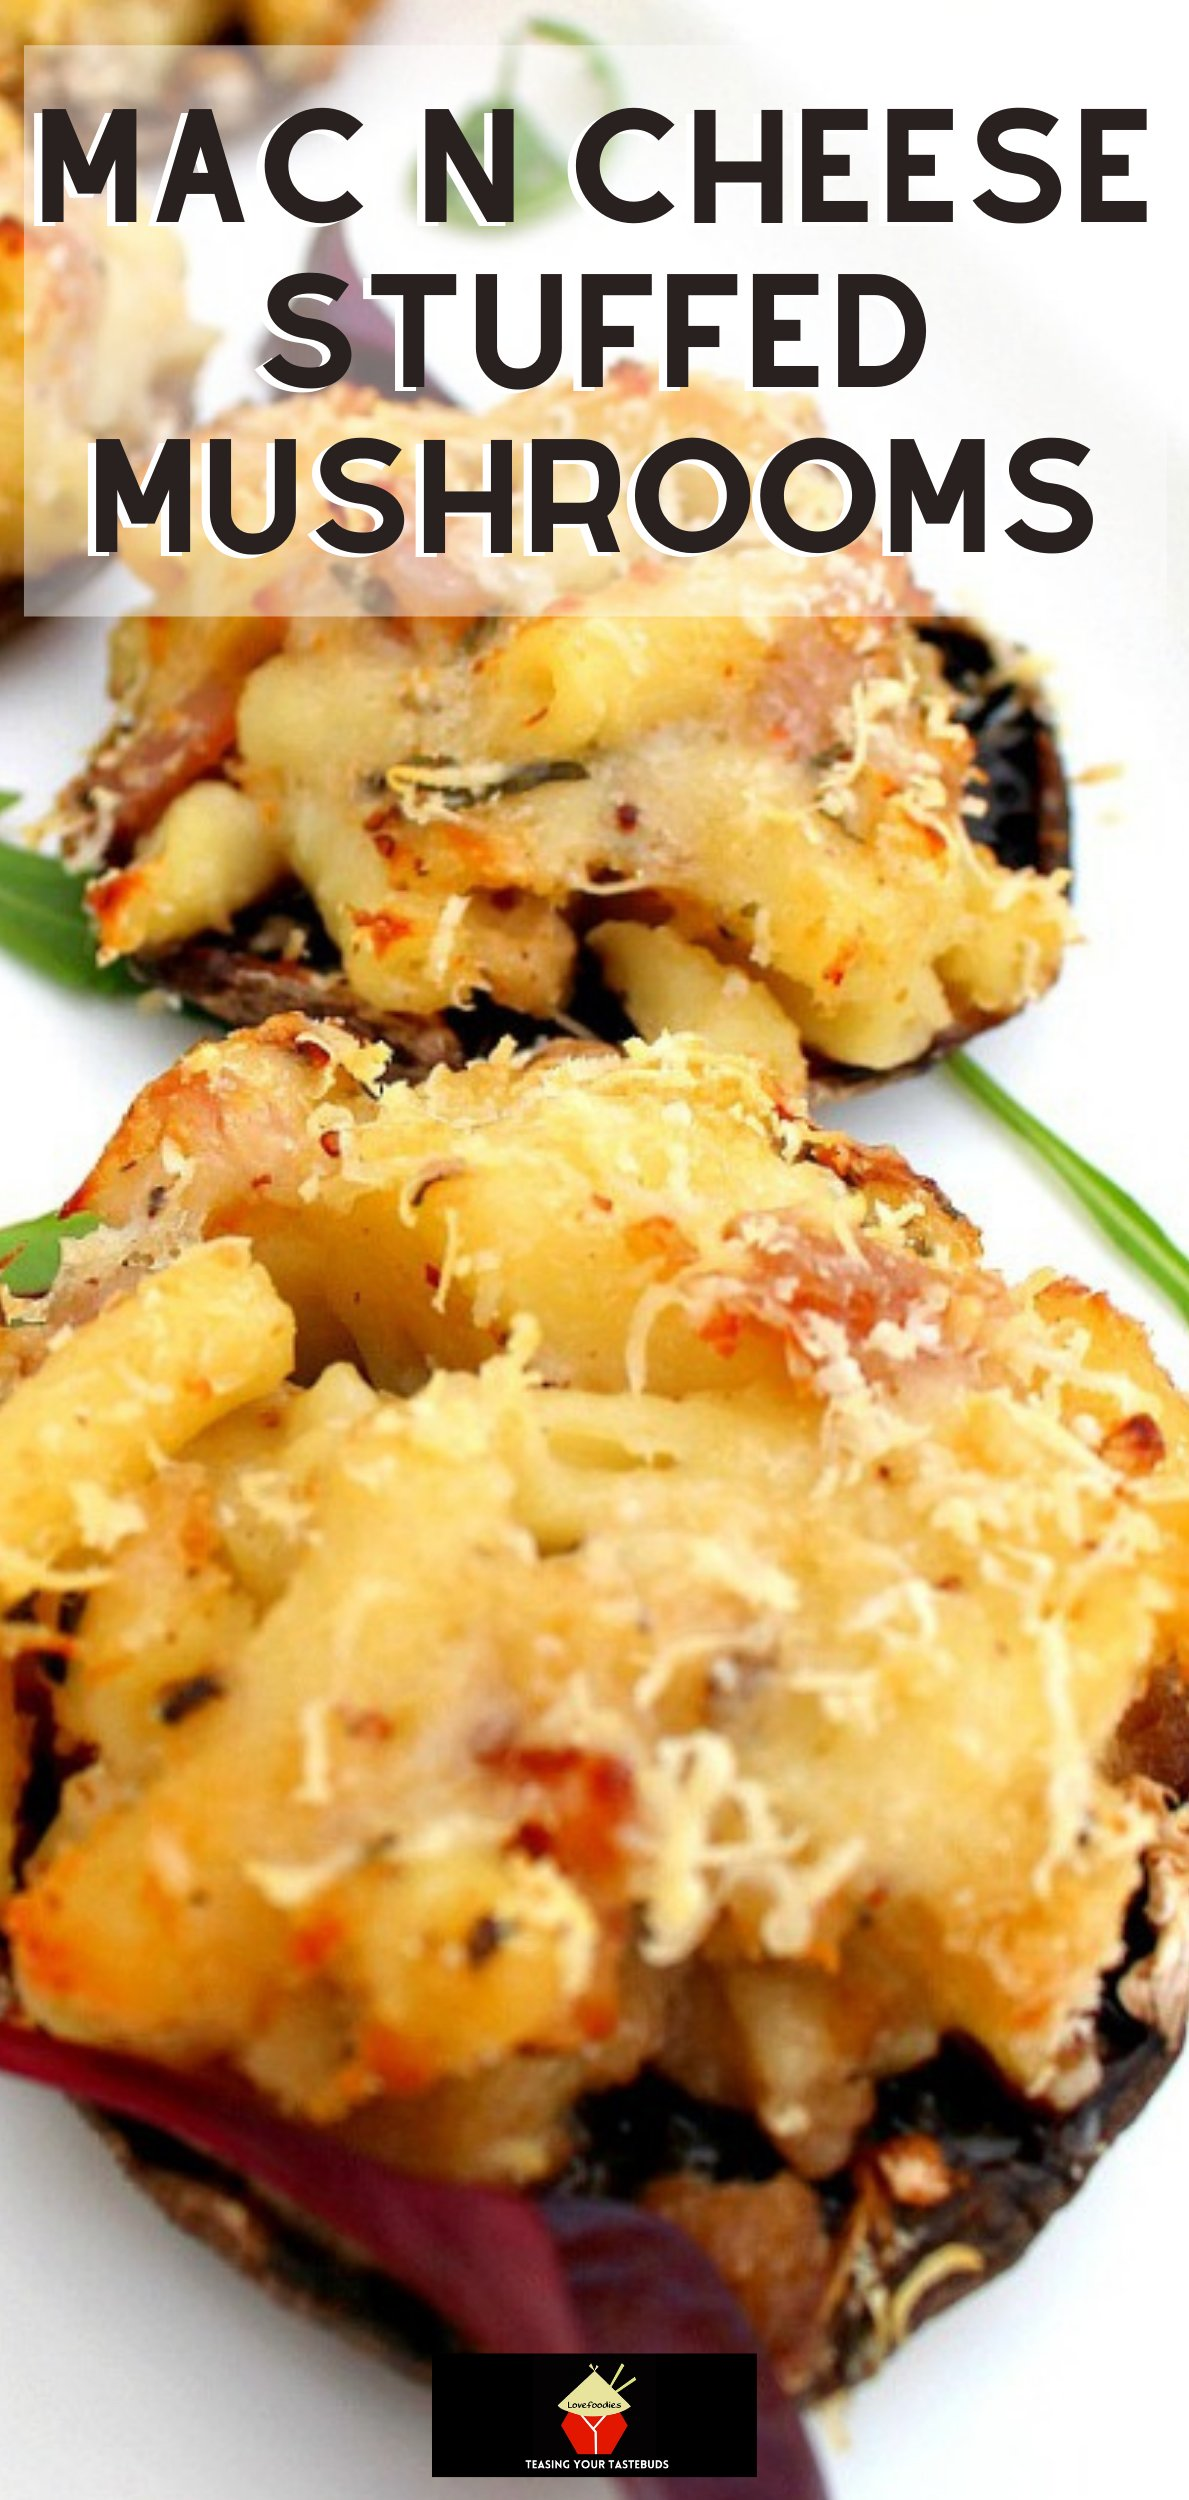 Mac N Cheese Stuffed Mushrooms is so delicious! Easy to make and great for parties or as an appetizer. Baked mushrooms stuffed with creamy macaroni and cheese filling with bacon too!